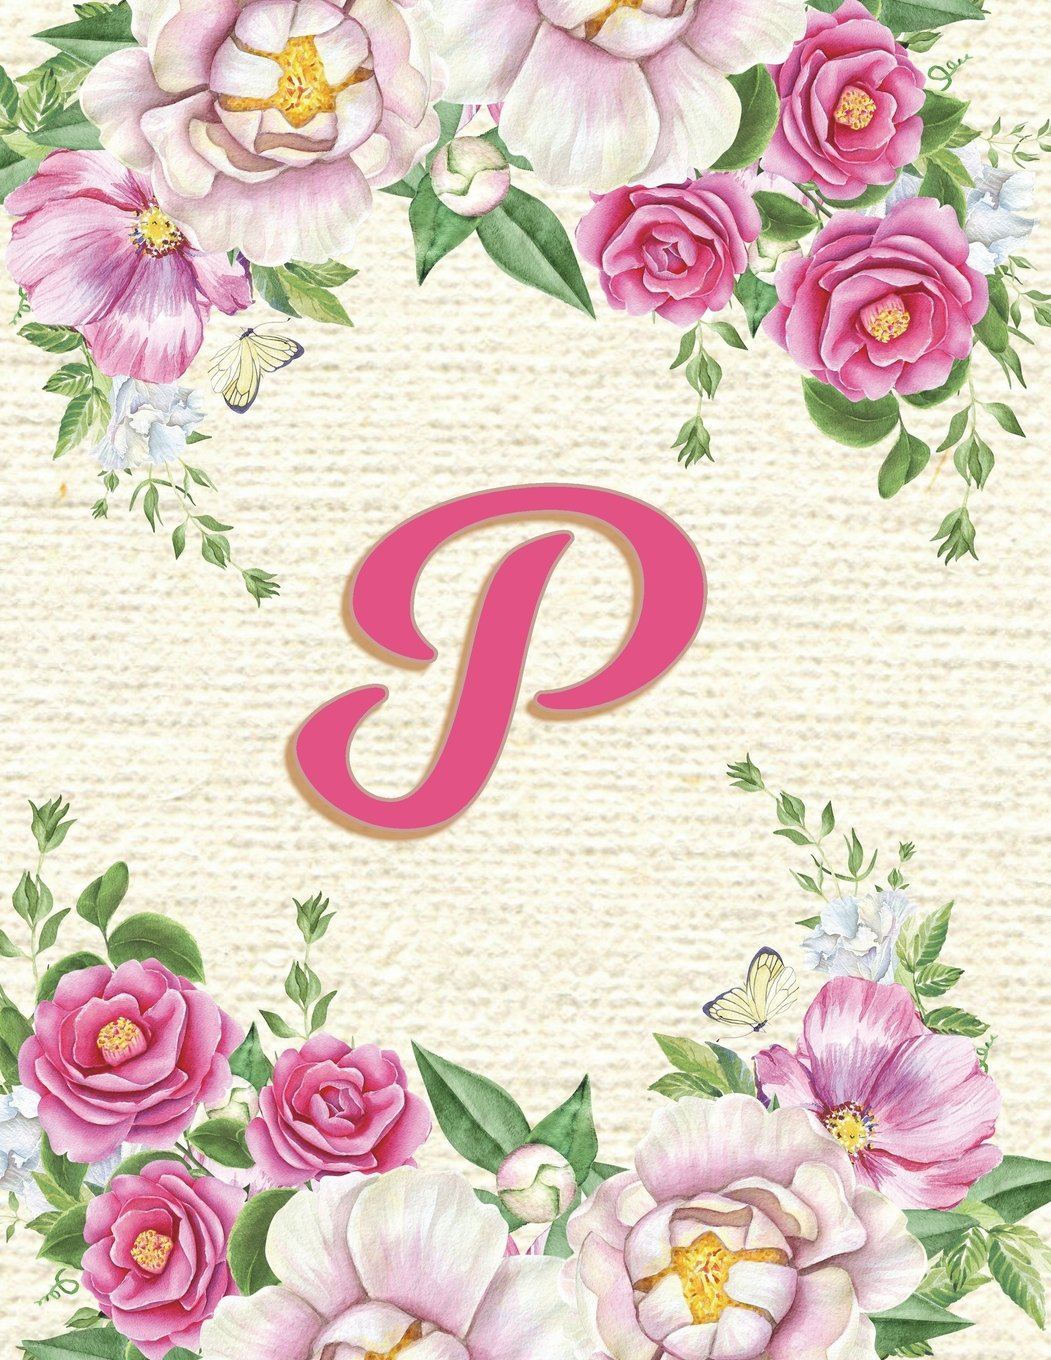 """Read Online P: Pink Floral Monogram Diary, Journal, Composition Notebook for Women - 8.5""""x 11"""" - Notebook with 150 Lined pagesPink Floral Monogram Diary with ... Lined pages (Monogram Journals) (Volume 16) PDF"""